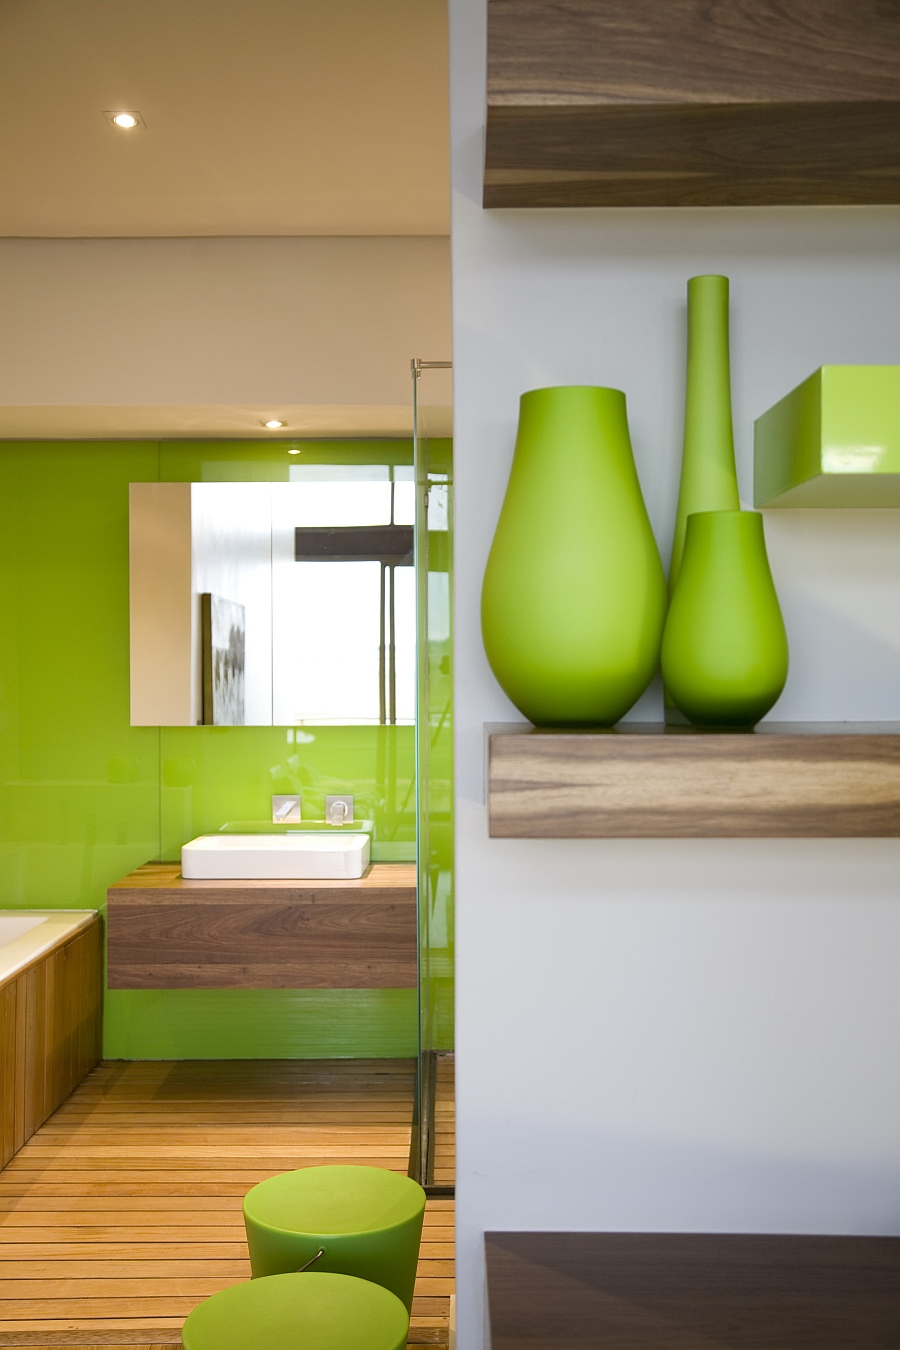 Contemporary bathroom in cool green and white